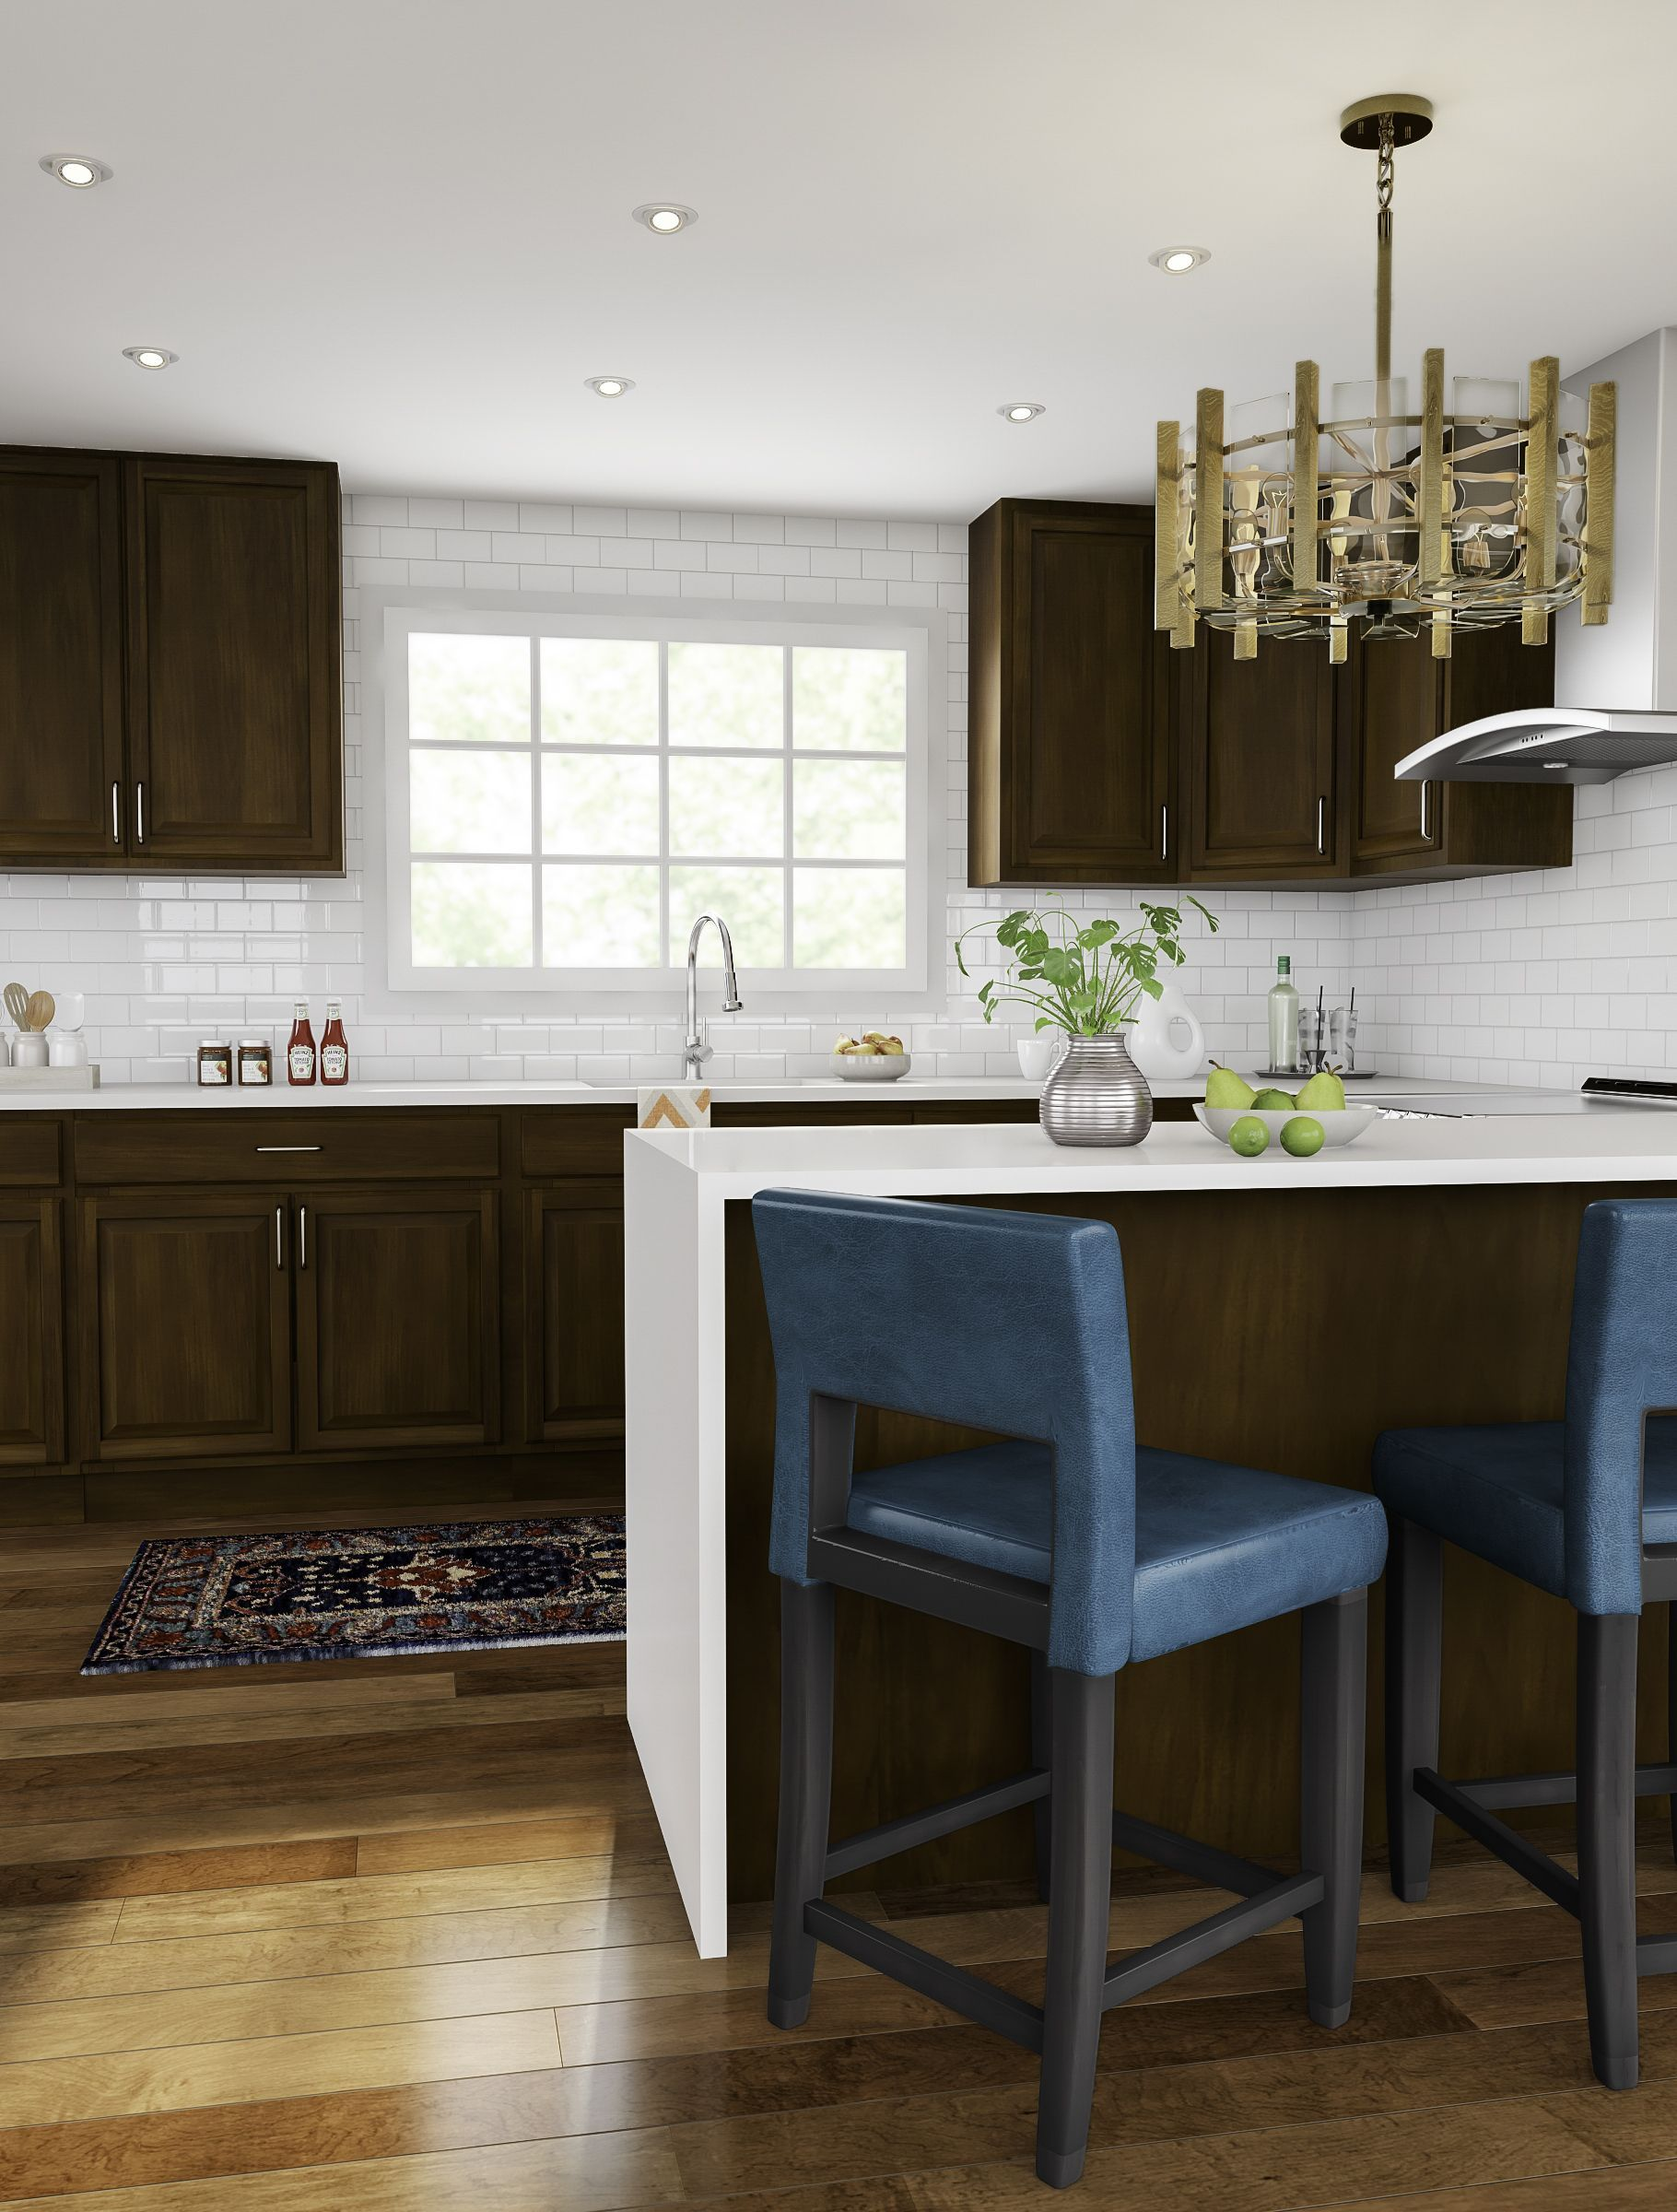 9 Layouts Perfect for Your Small Cooking area kitchenaid ...